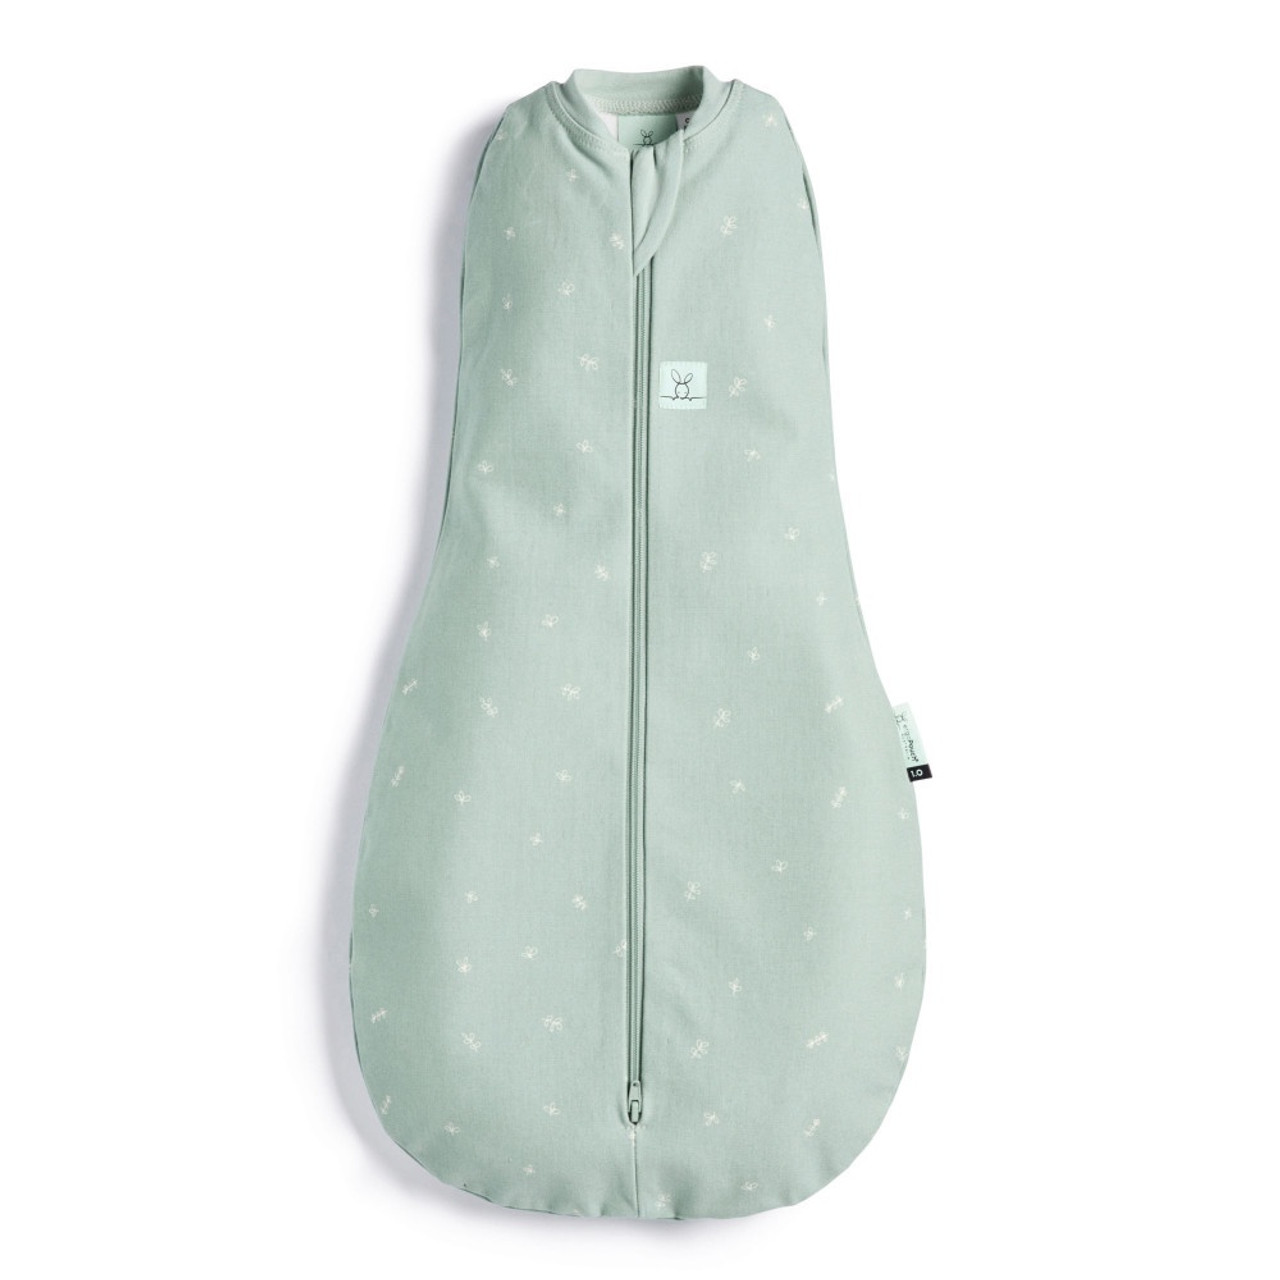 Ergopouch Cocoon Swaddle Bag 1.0 tog 6-12 Months SAGE at Baby Barn Discounts ErgoPouch cocoon 1.0 tog is an escape-proof swaddle which converts to a sleeping bag.